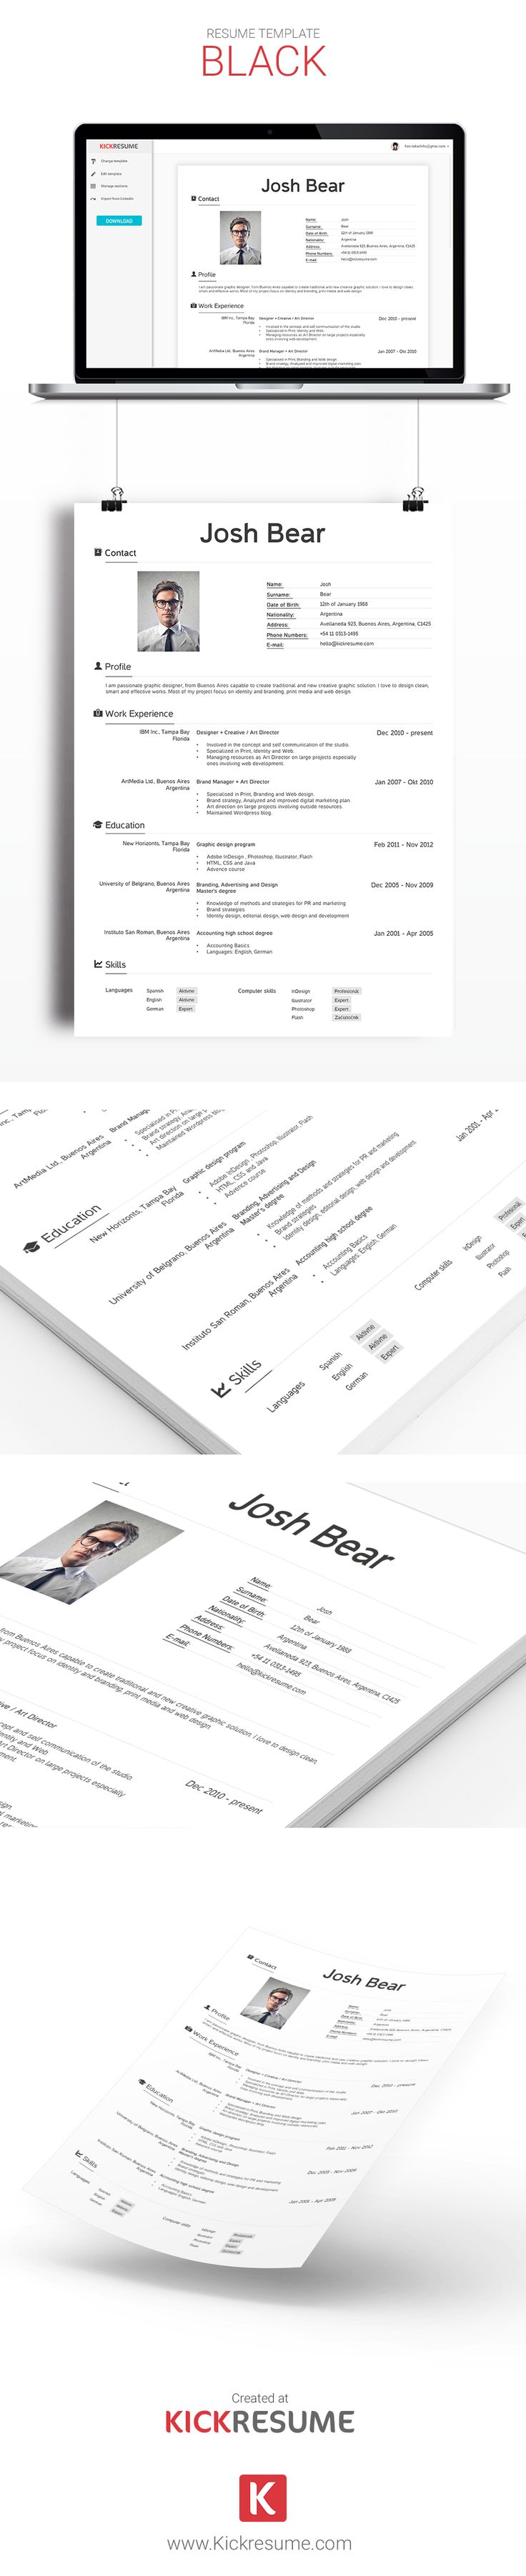 best images about kickresume templates gallery resume samples create stand out resume and get hired kickresume com resume sample